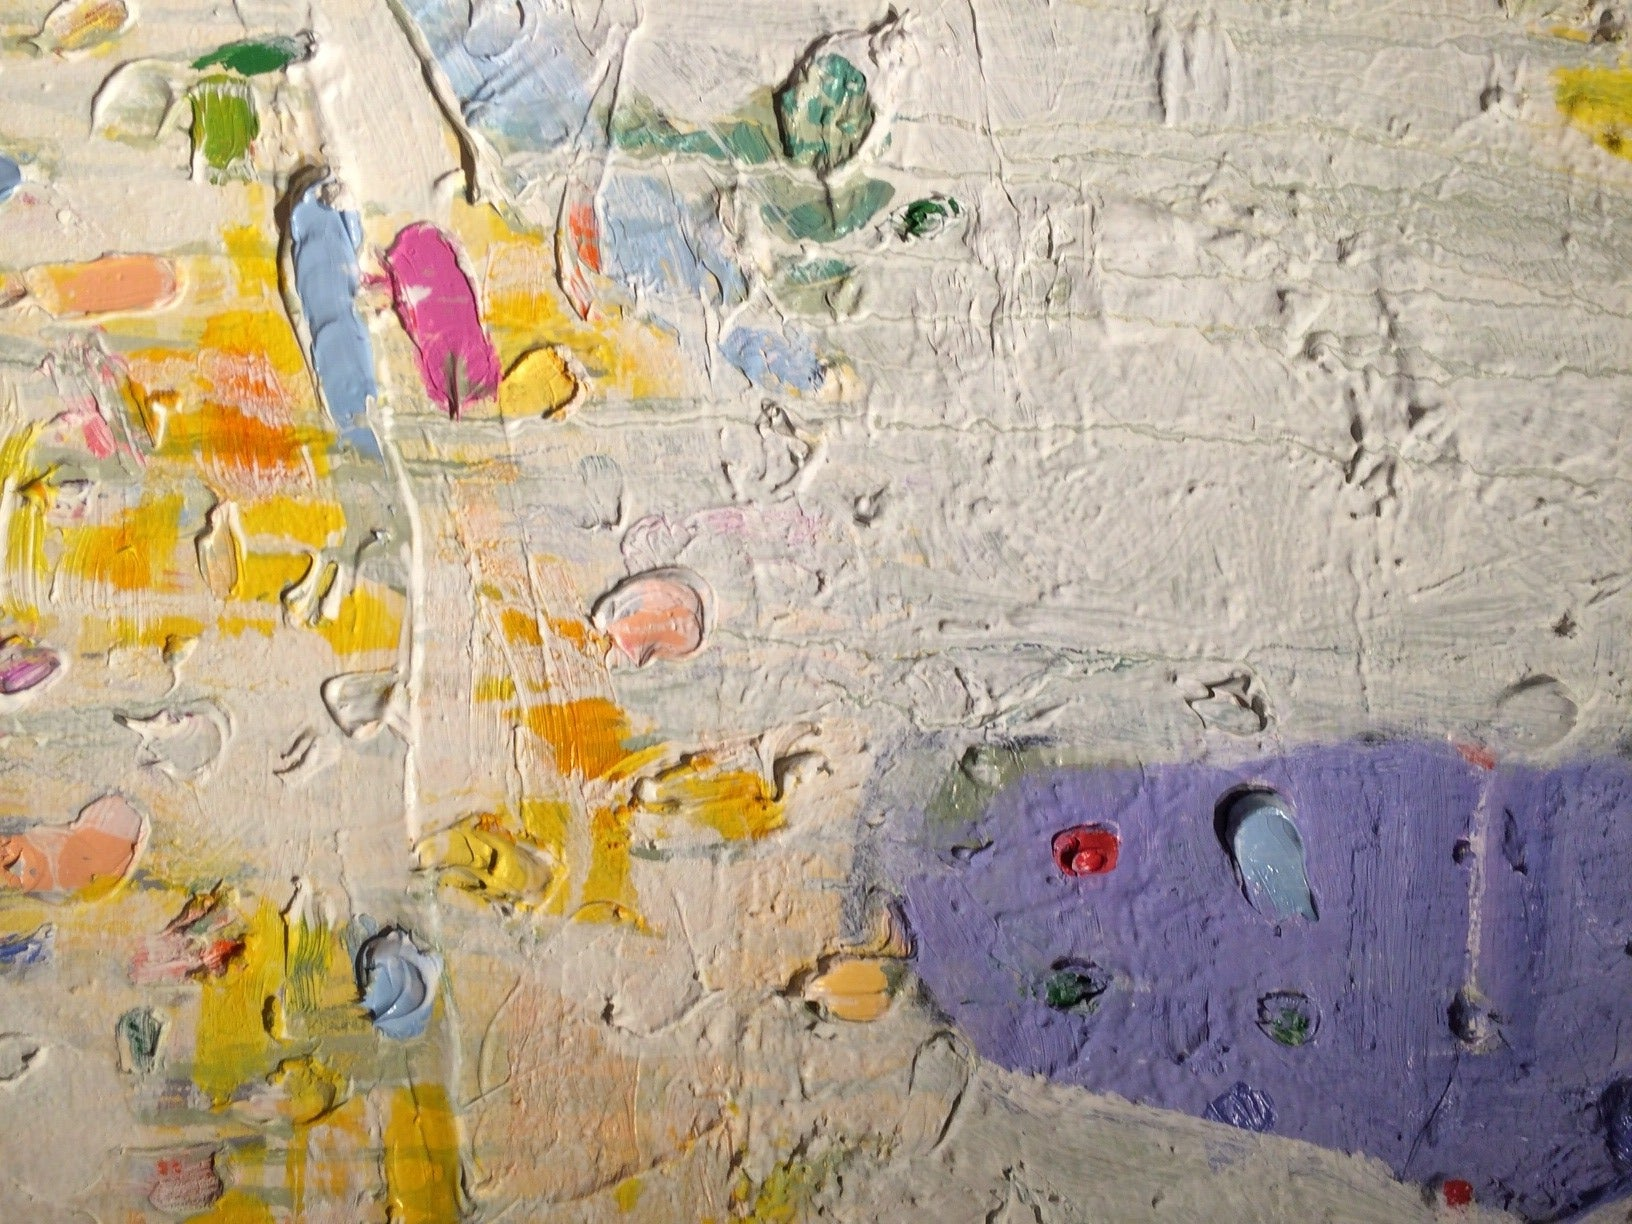 This diptych abstract painting is all about its texture, movement, and vibrant colors. (Blue, Orange, Yellow, White, Grey)  David Miller lives and works near Saratoga Springs, NY where he formerly taught painting at Skidmore College. He has